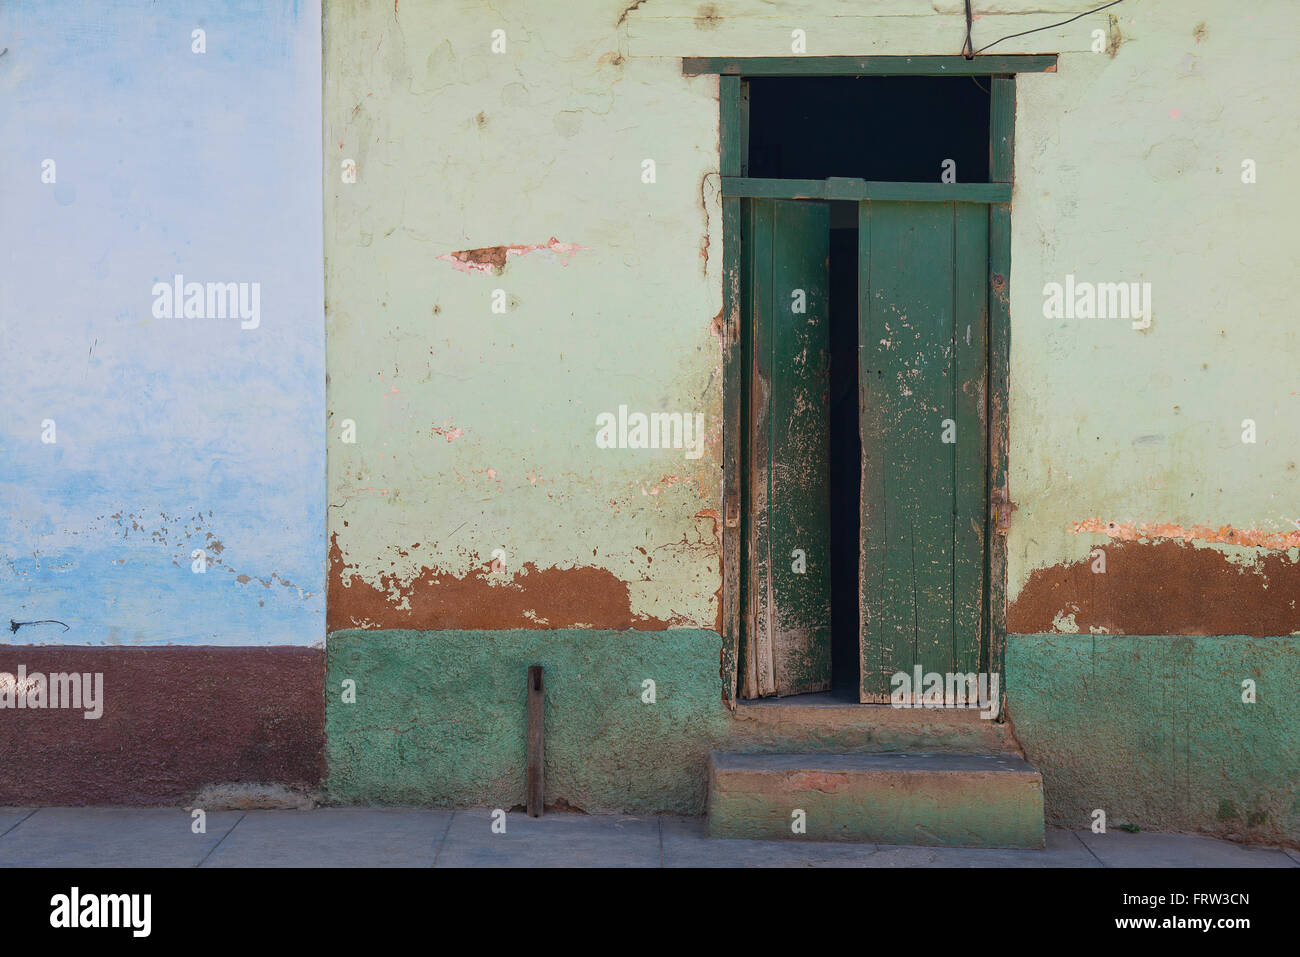 A wall of different colors and textures in the old Cuban town of Trinidad. - Stock Image